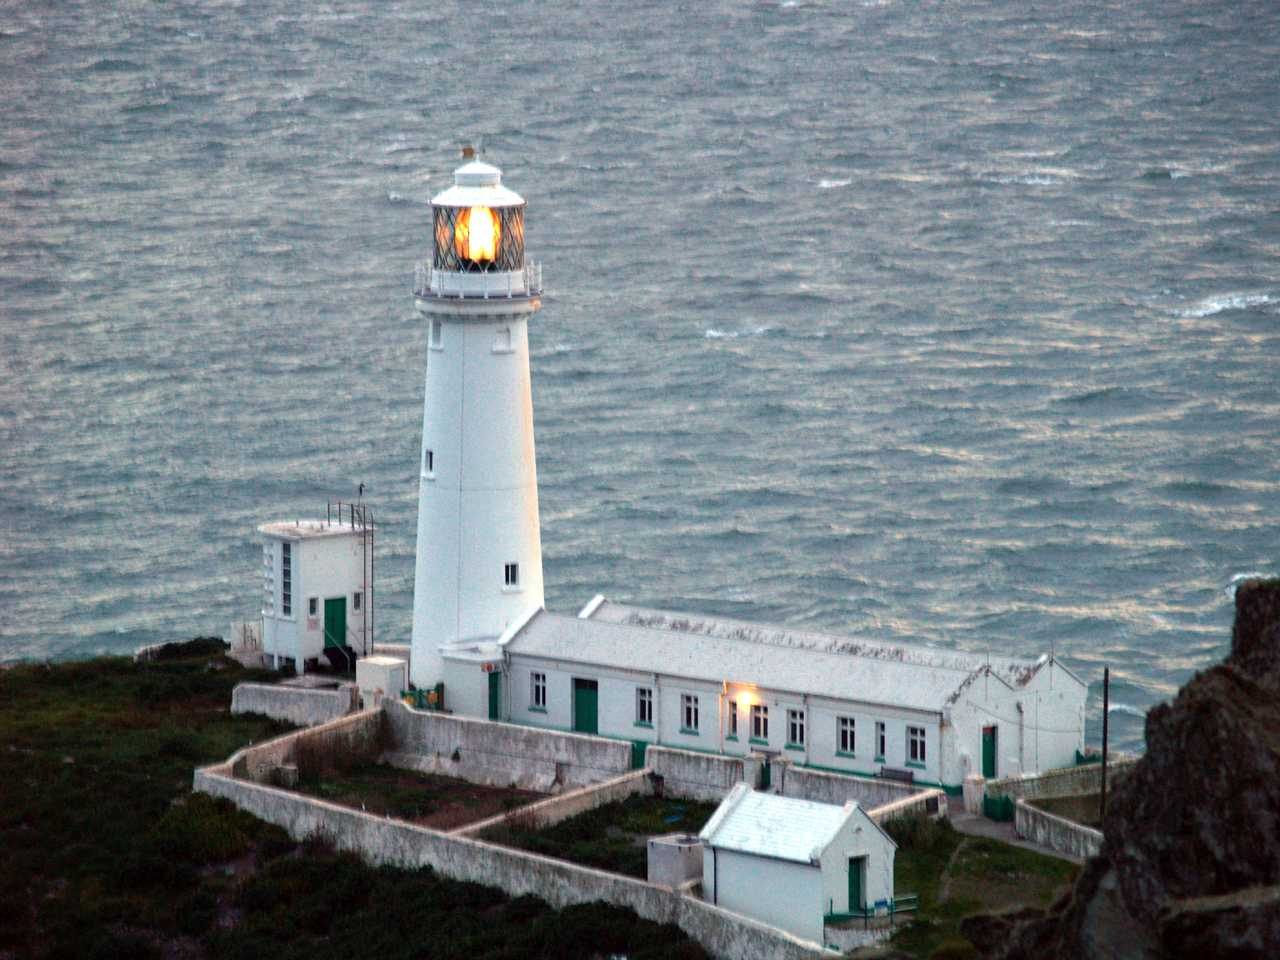 holyhead, south stack lighthouse in the evening